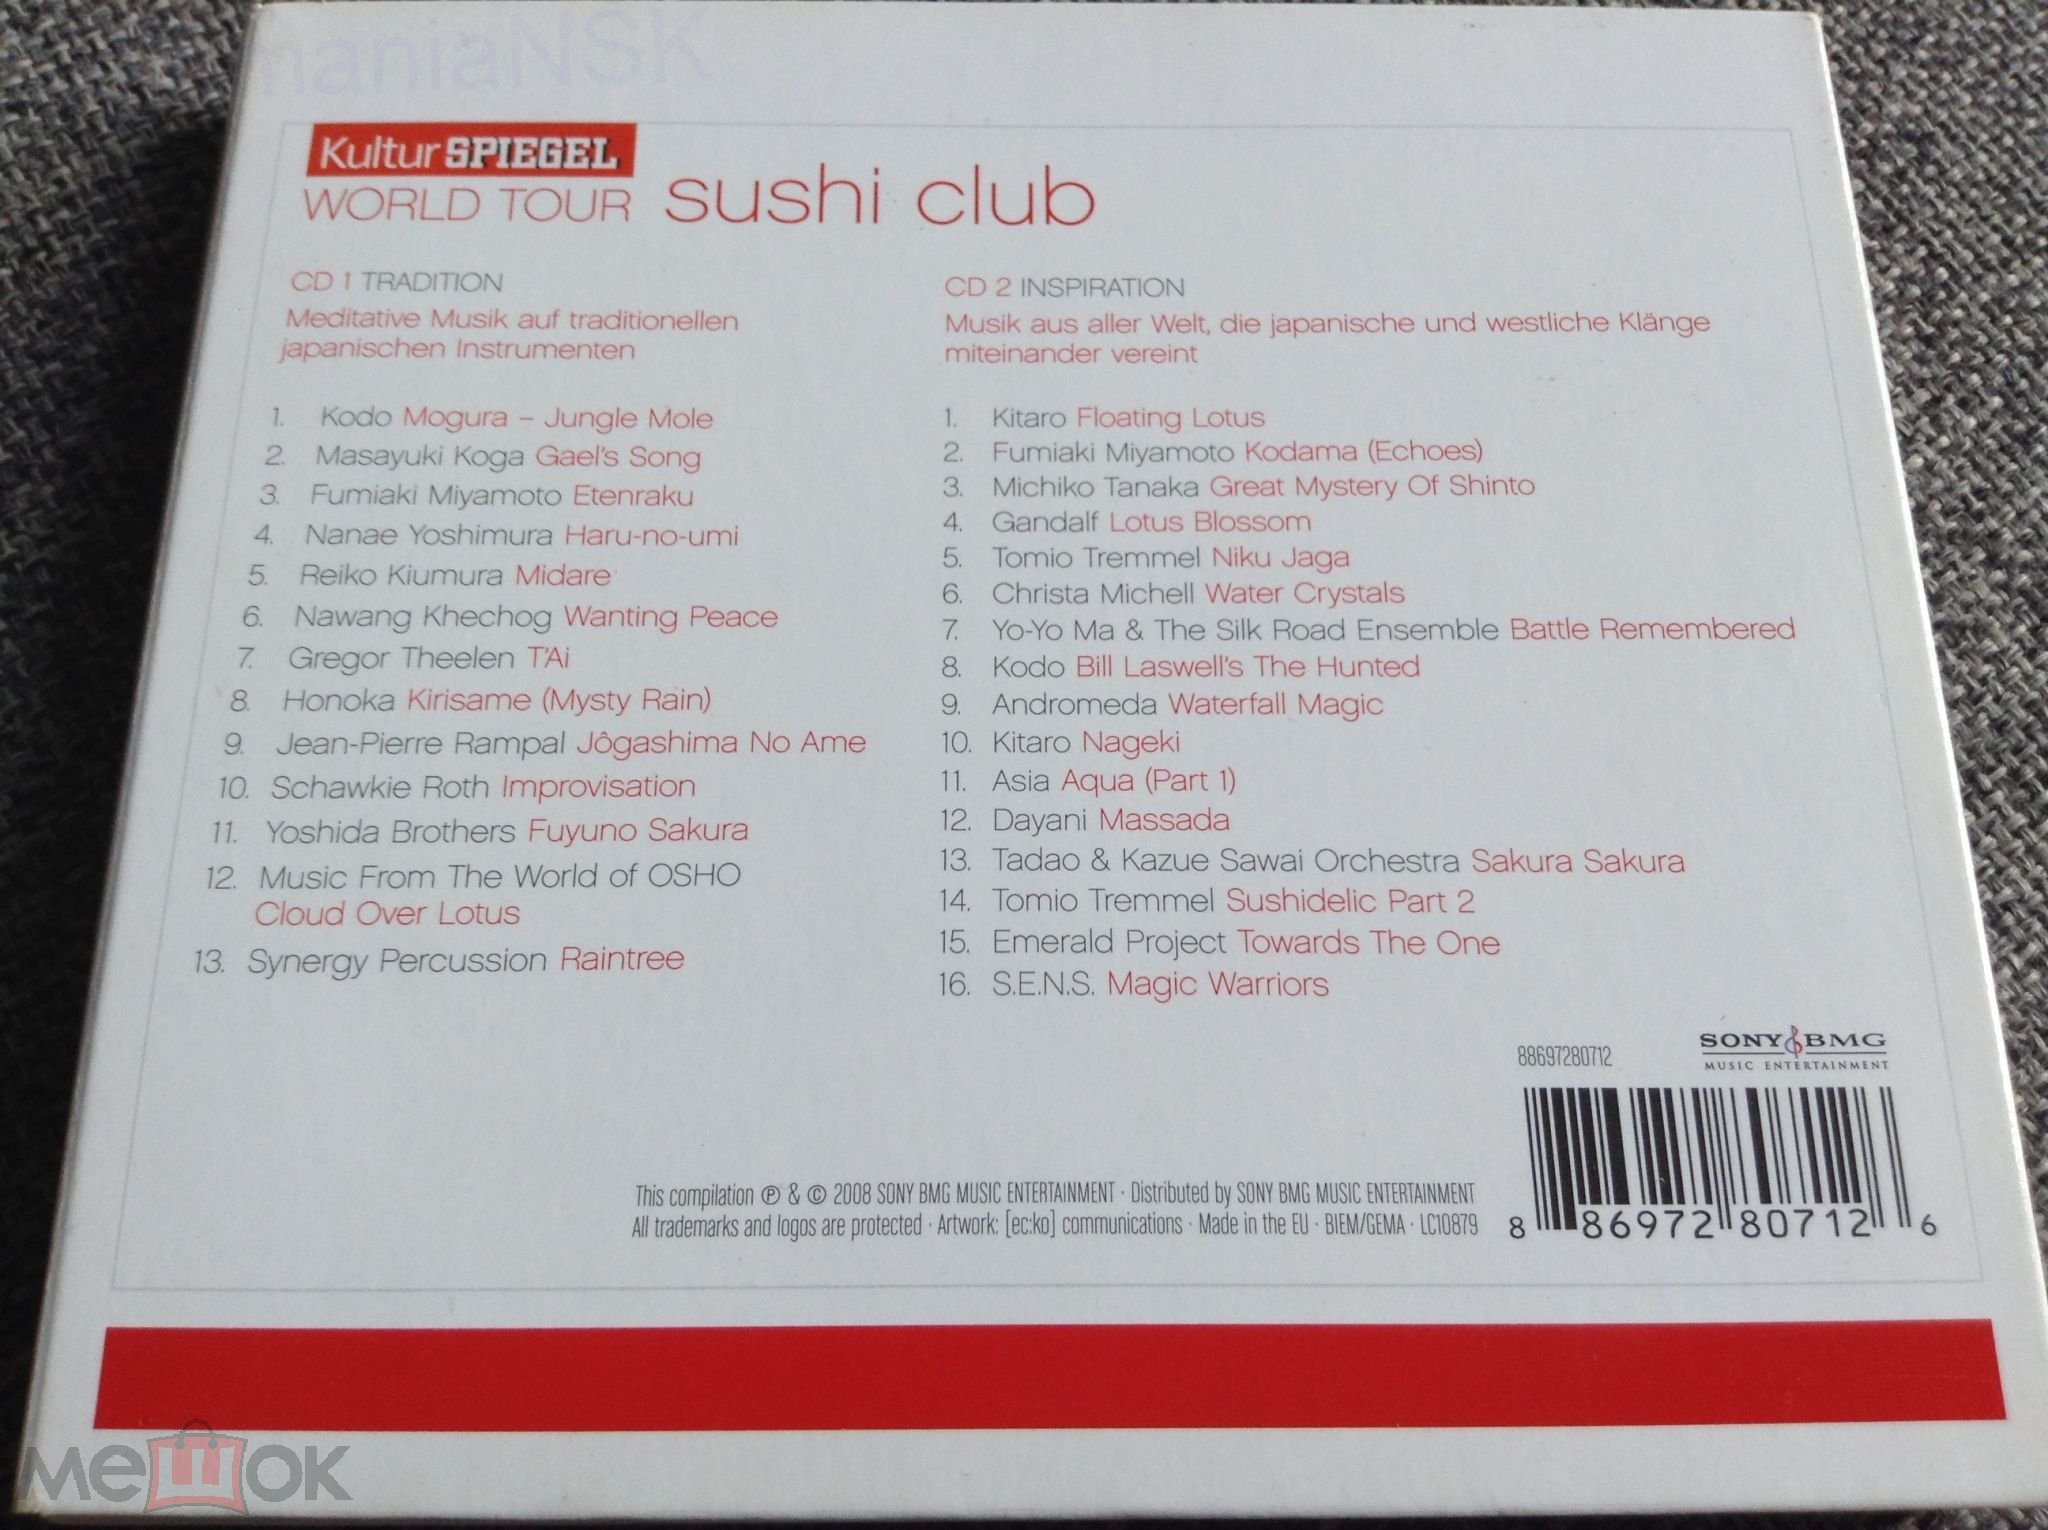 KULTUR SPIEGEL -World Tour -Sushi Club/2008 Sony BMG (2CD) DIGIPACK/ SONY  DADC RESS CD